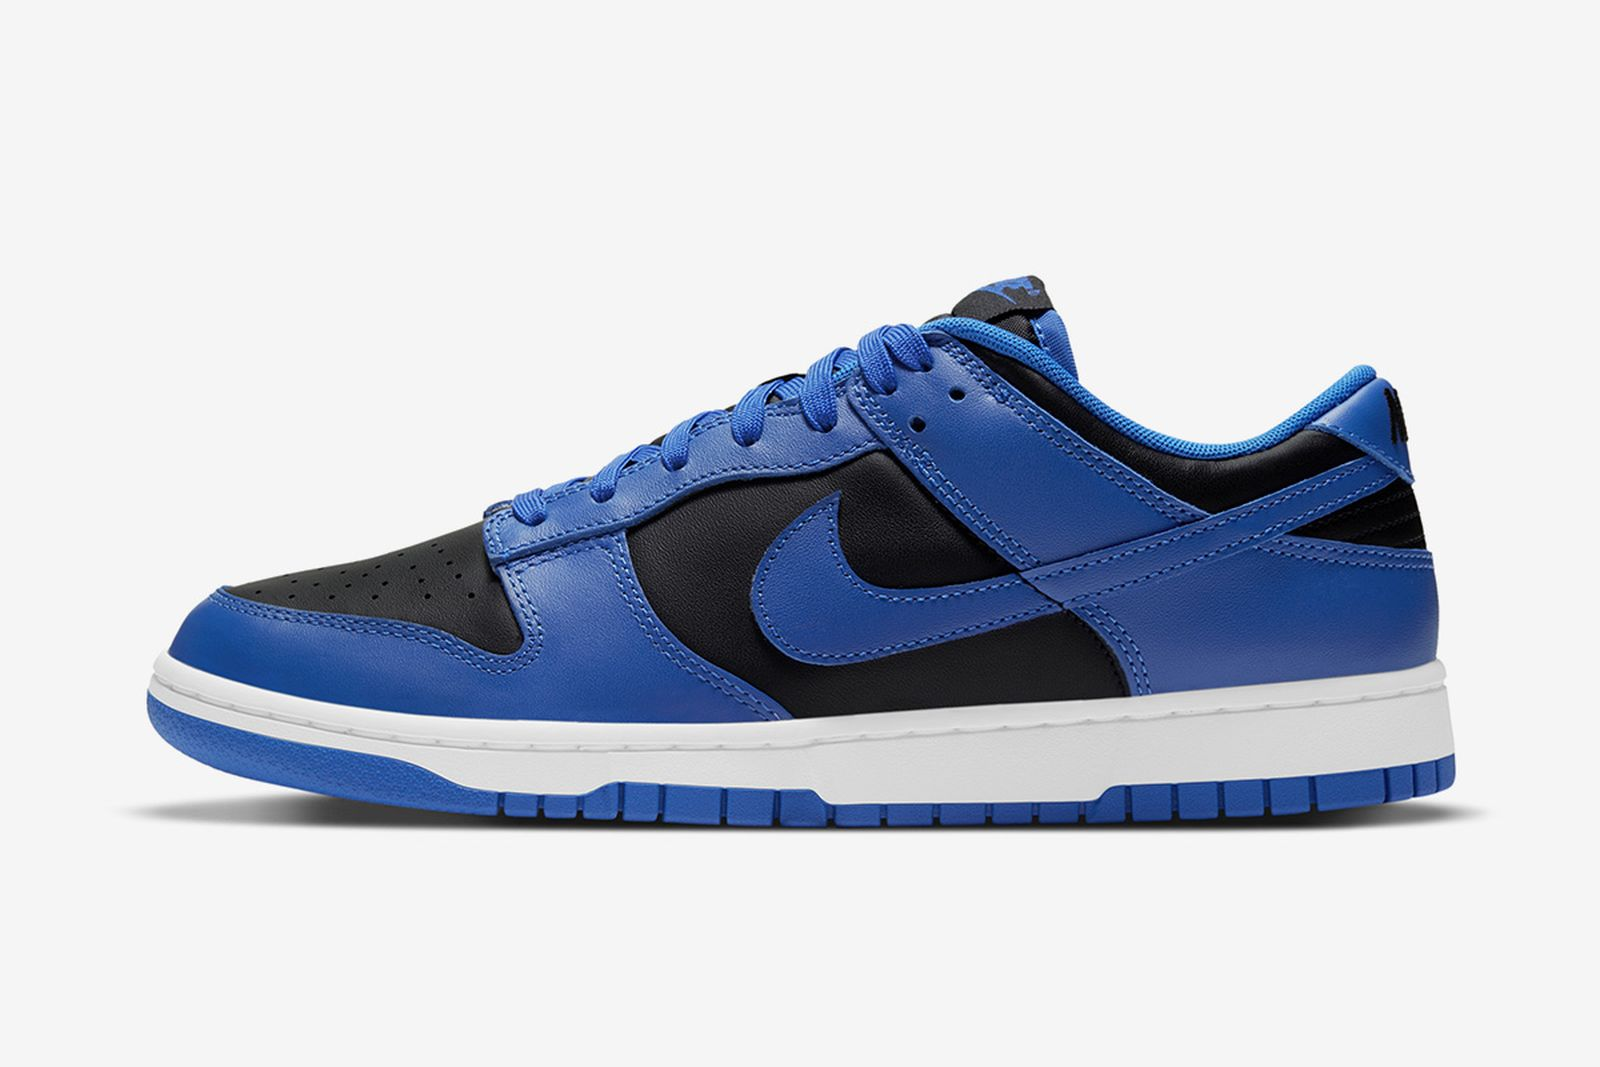 nike-dunk-spring-2021-release-date-price-1-13